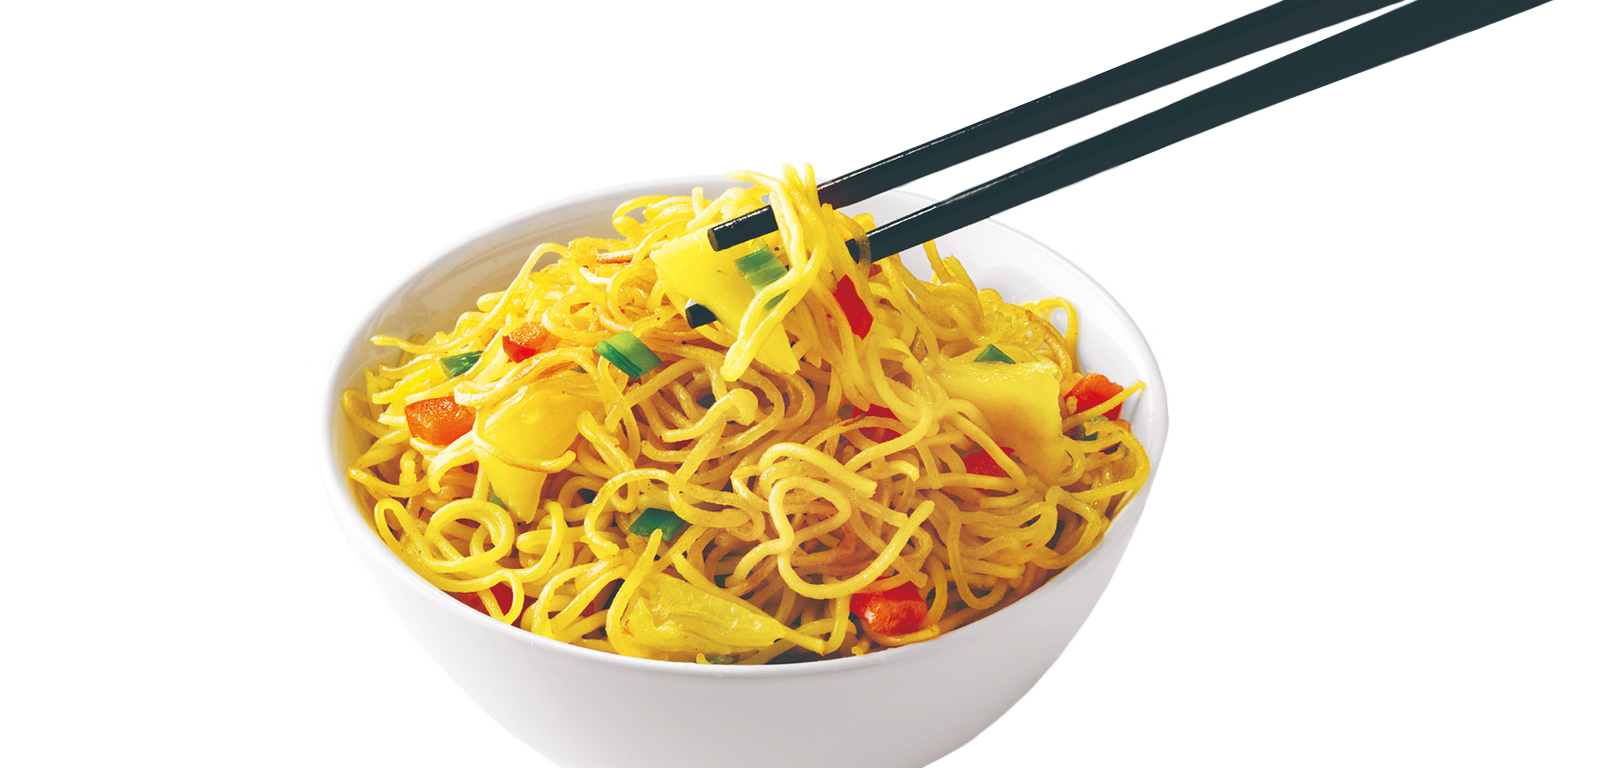 graphic download Noodle PNG images free download